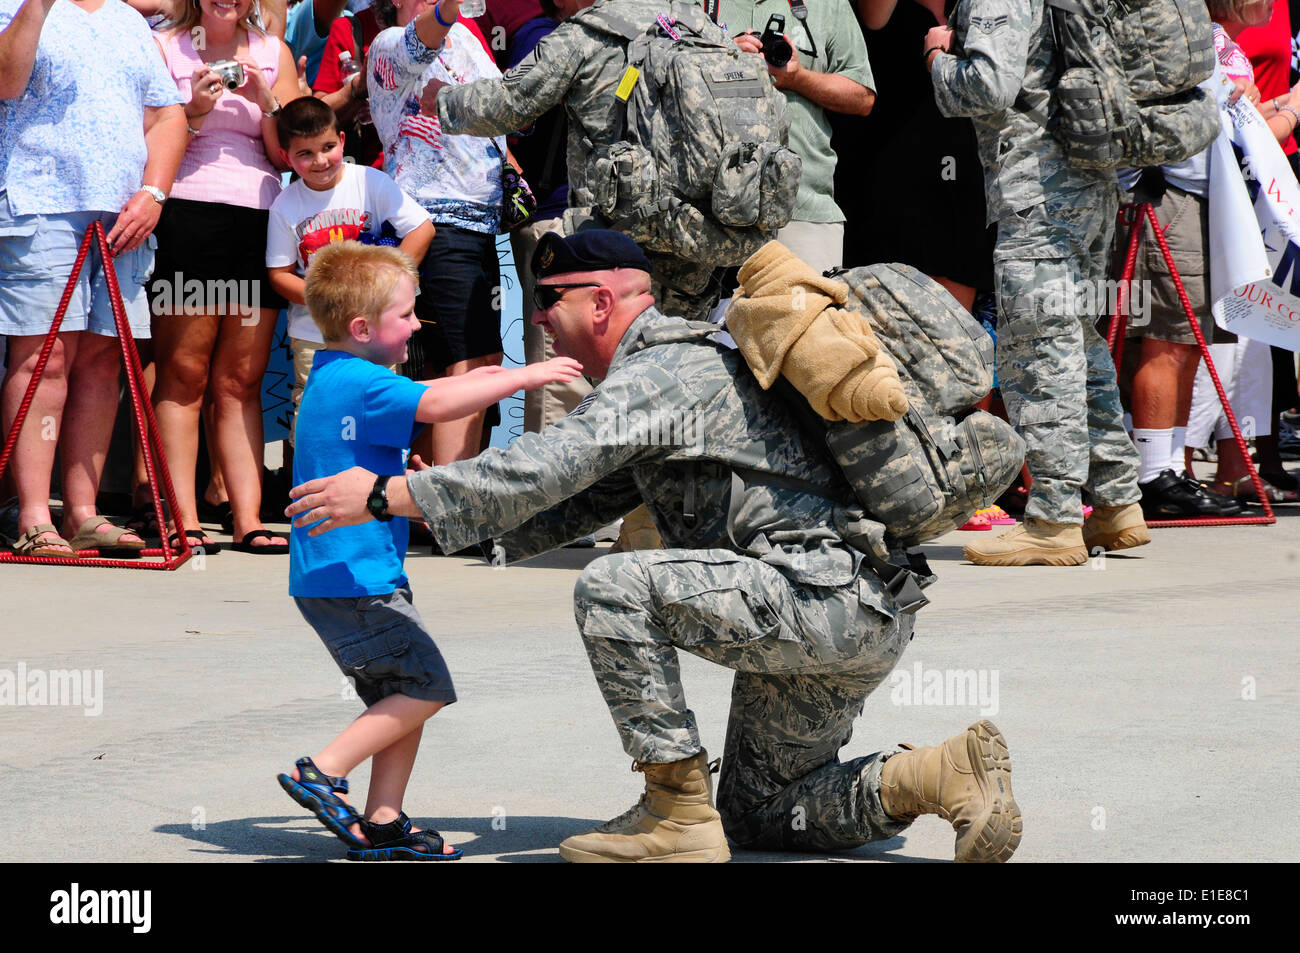 Tech. Sgt. Russell Buckner, 134 ARW Security Forces Squadron, recieves a well-earned hug from a family member after returning f - Stock Image